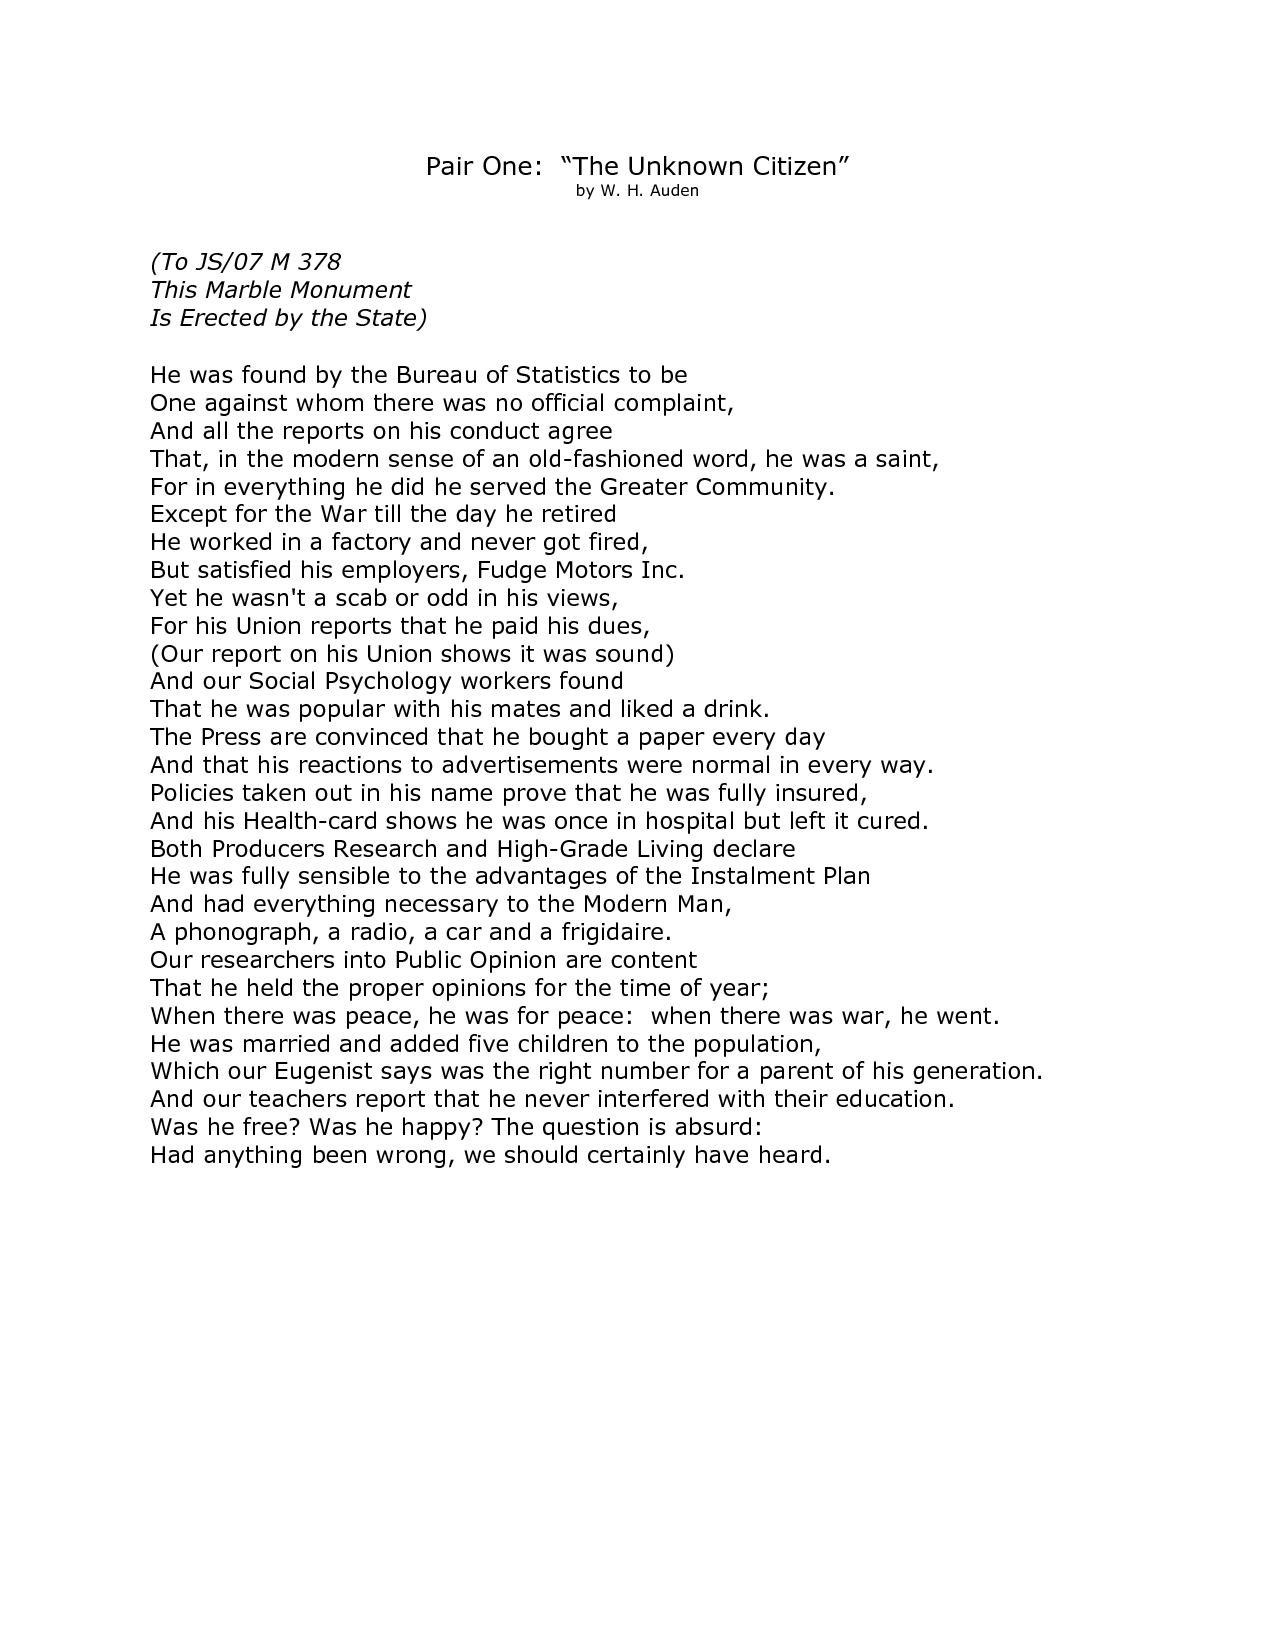 W.H. Auden; The Unknown Citizen; written 1939.  (Can be read easily in the larger view.)